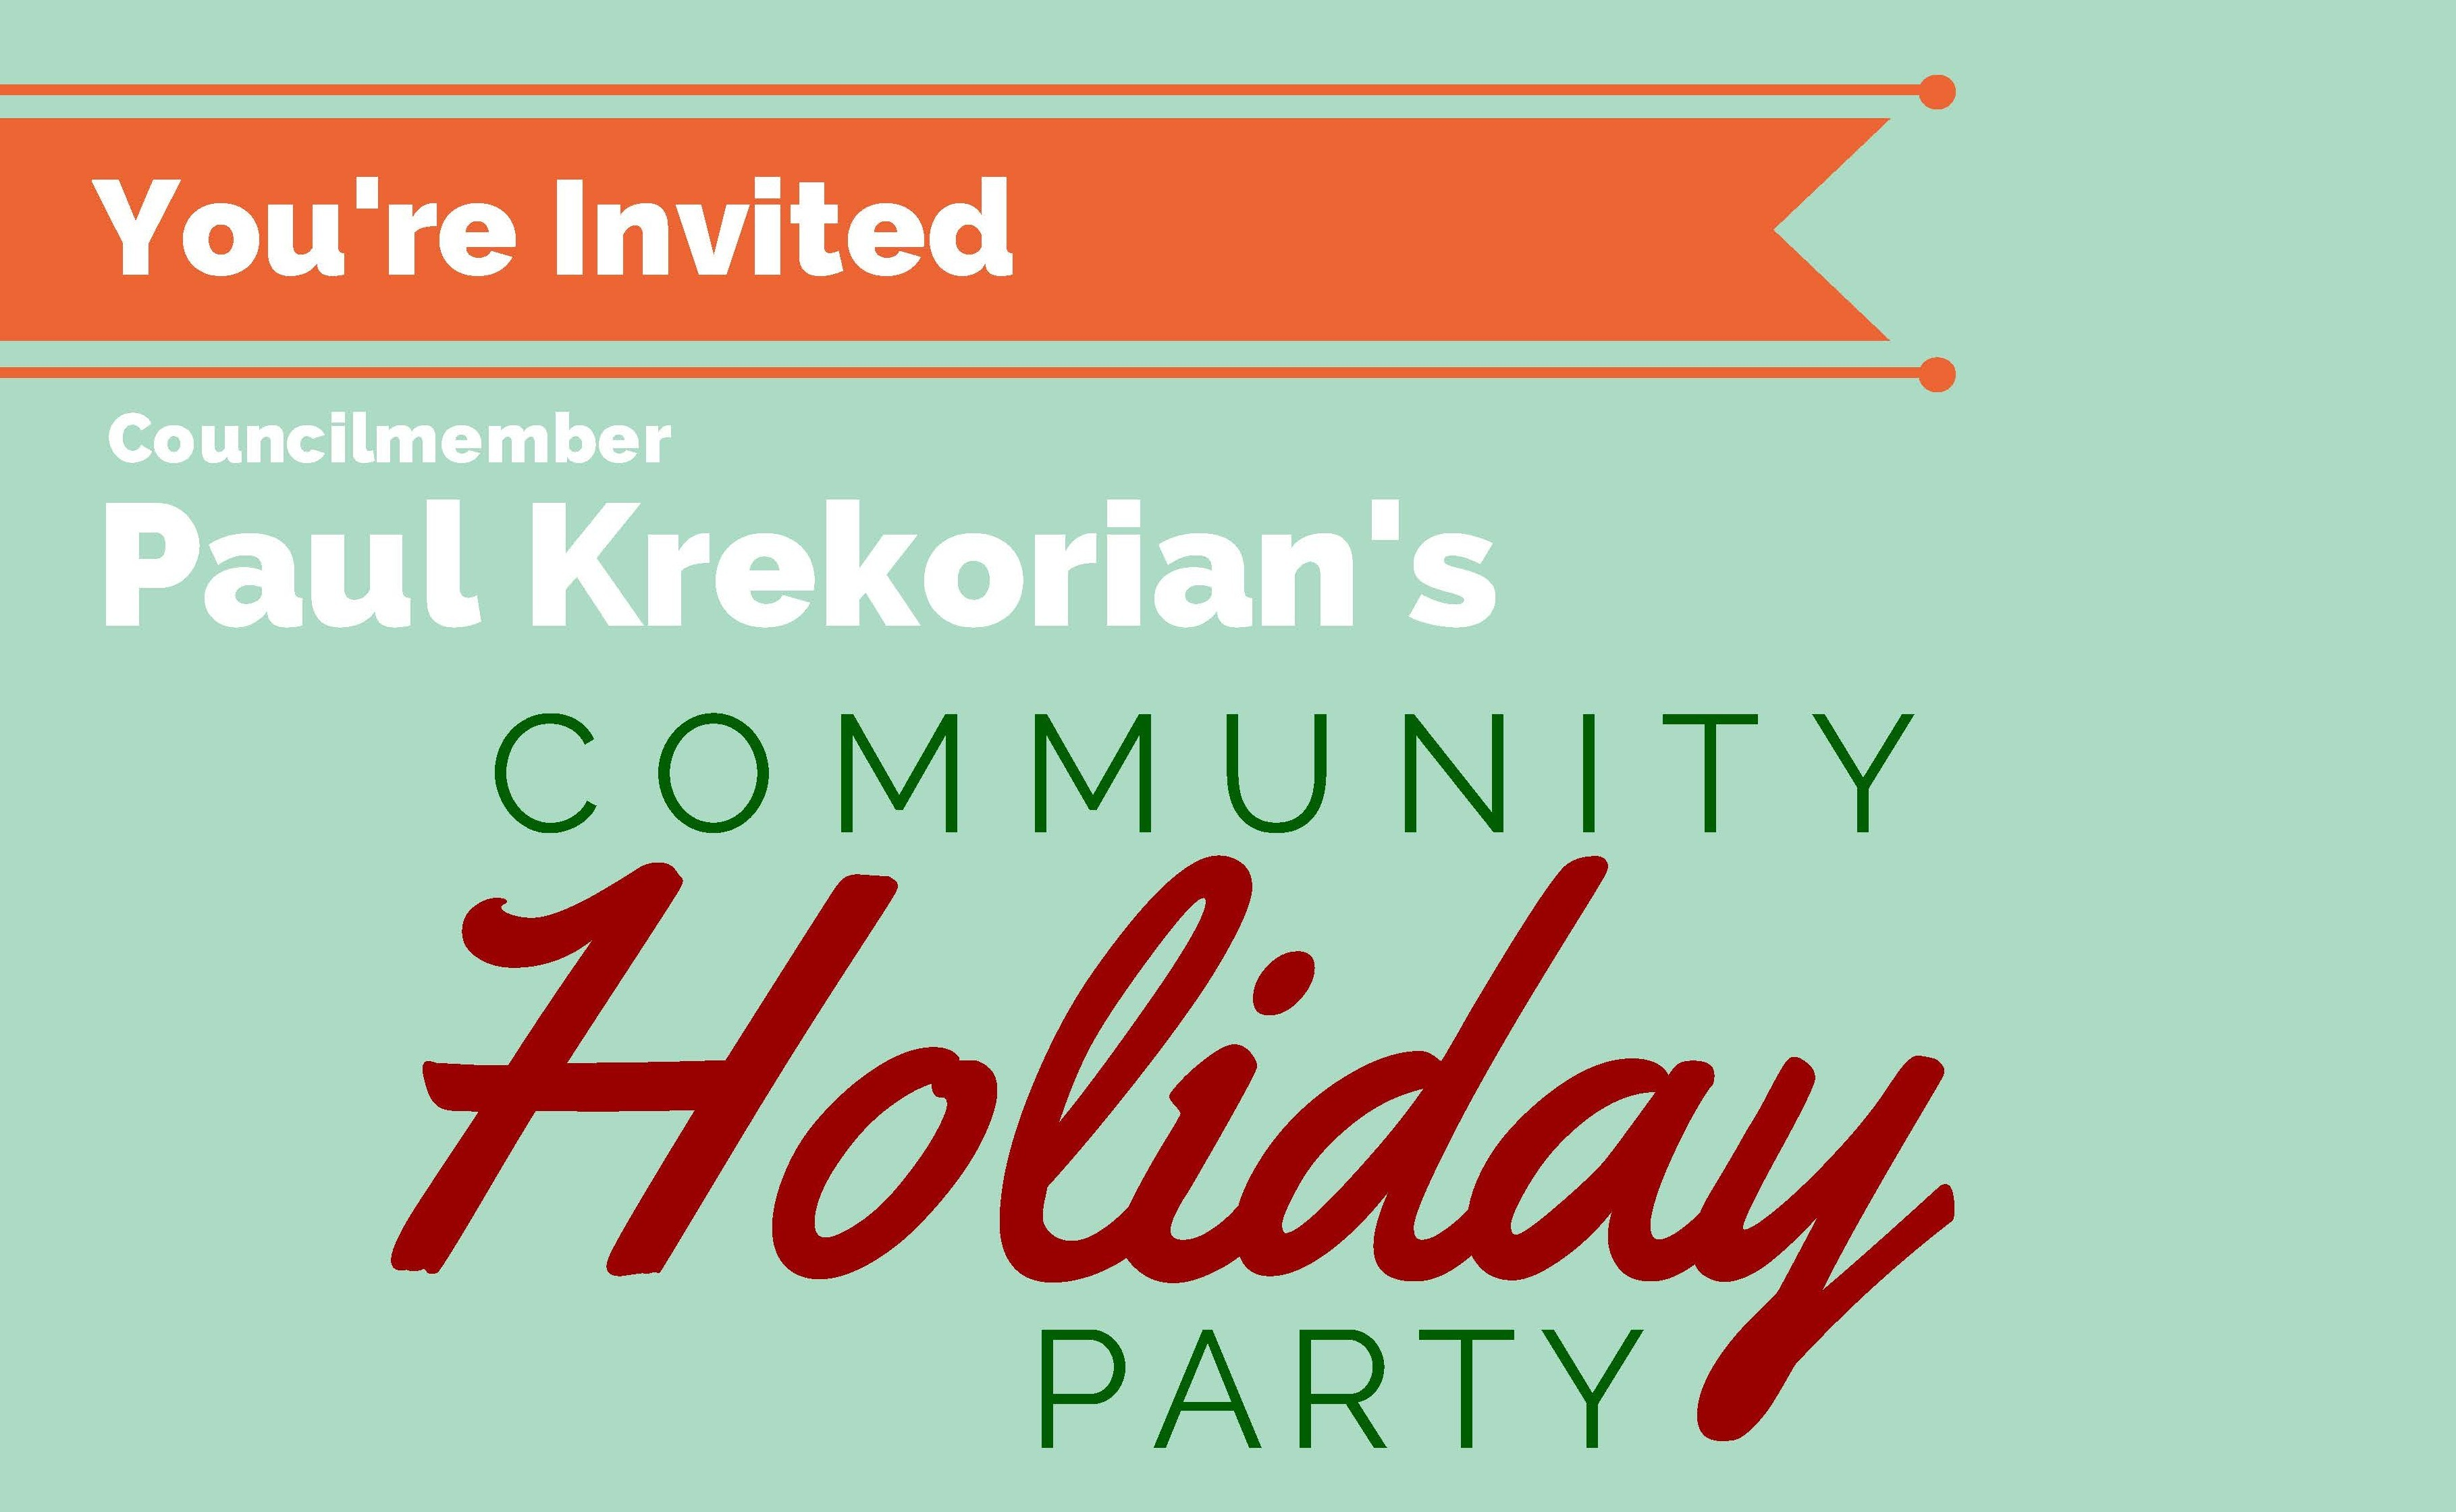 CD2 Holiday Party Invite (1)